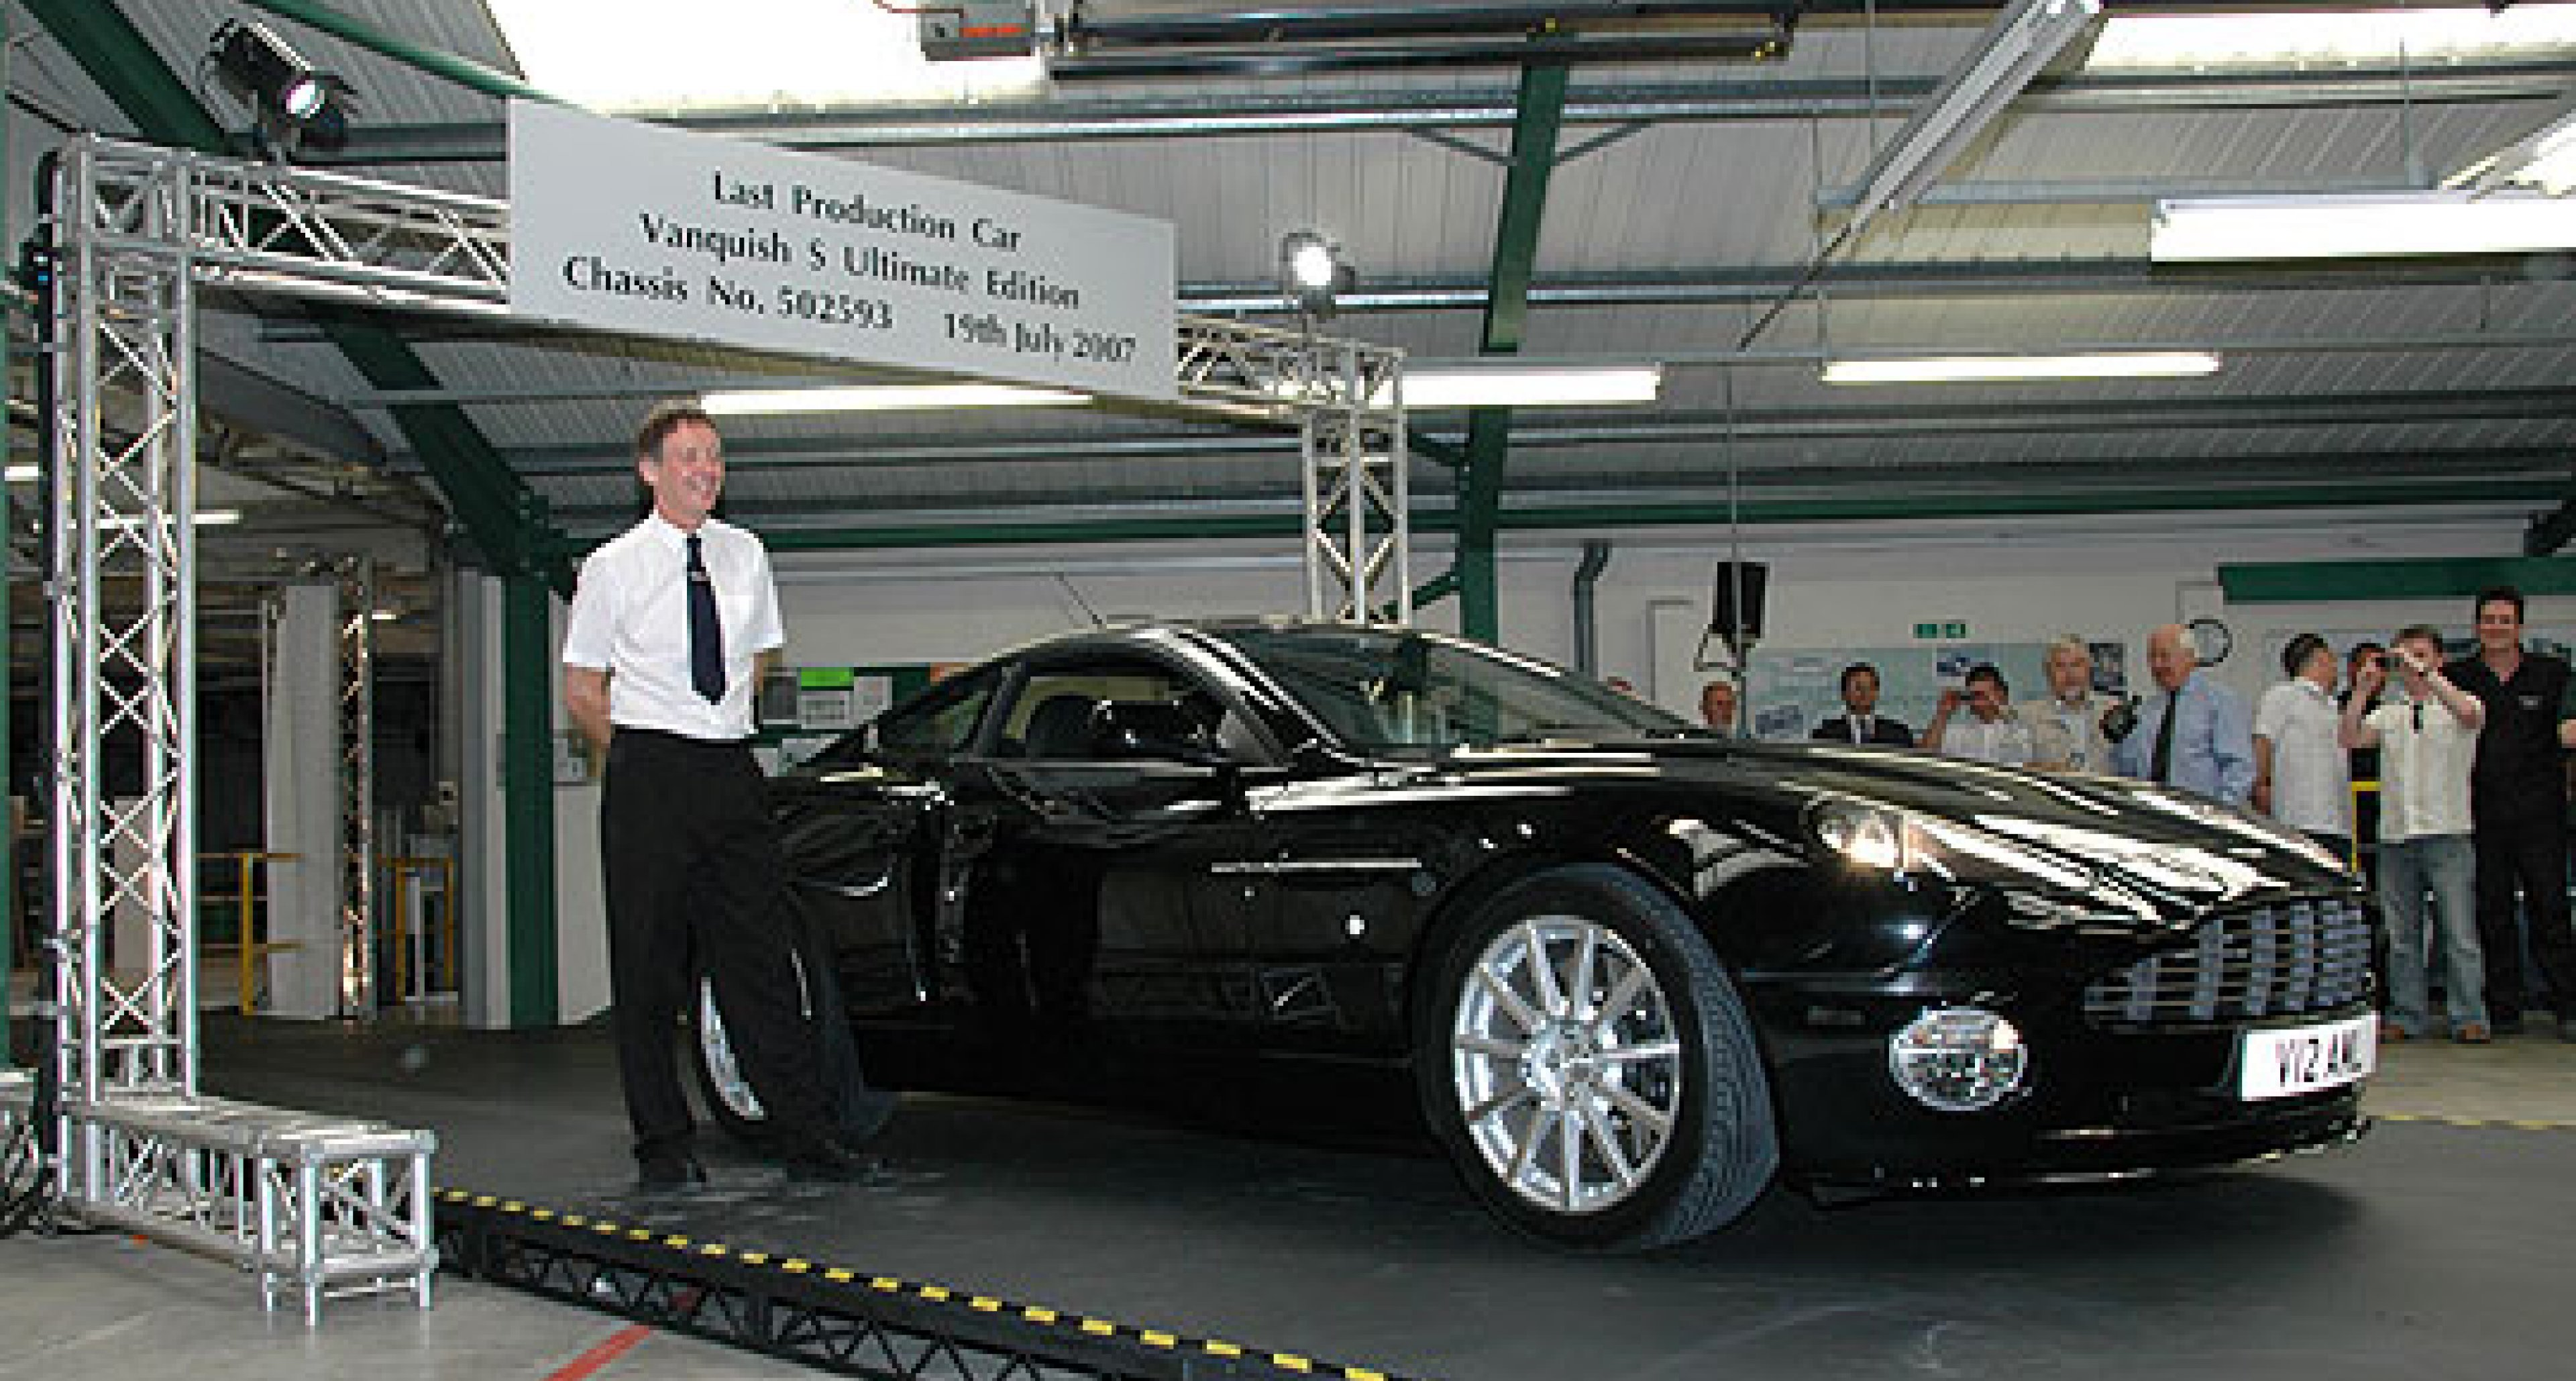 The Final Vanquish S Ultimate Edition Rolls Off the Production Line at Newport Pagnell